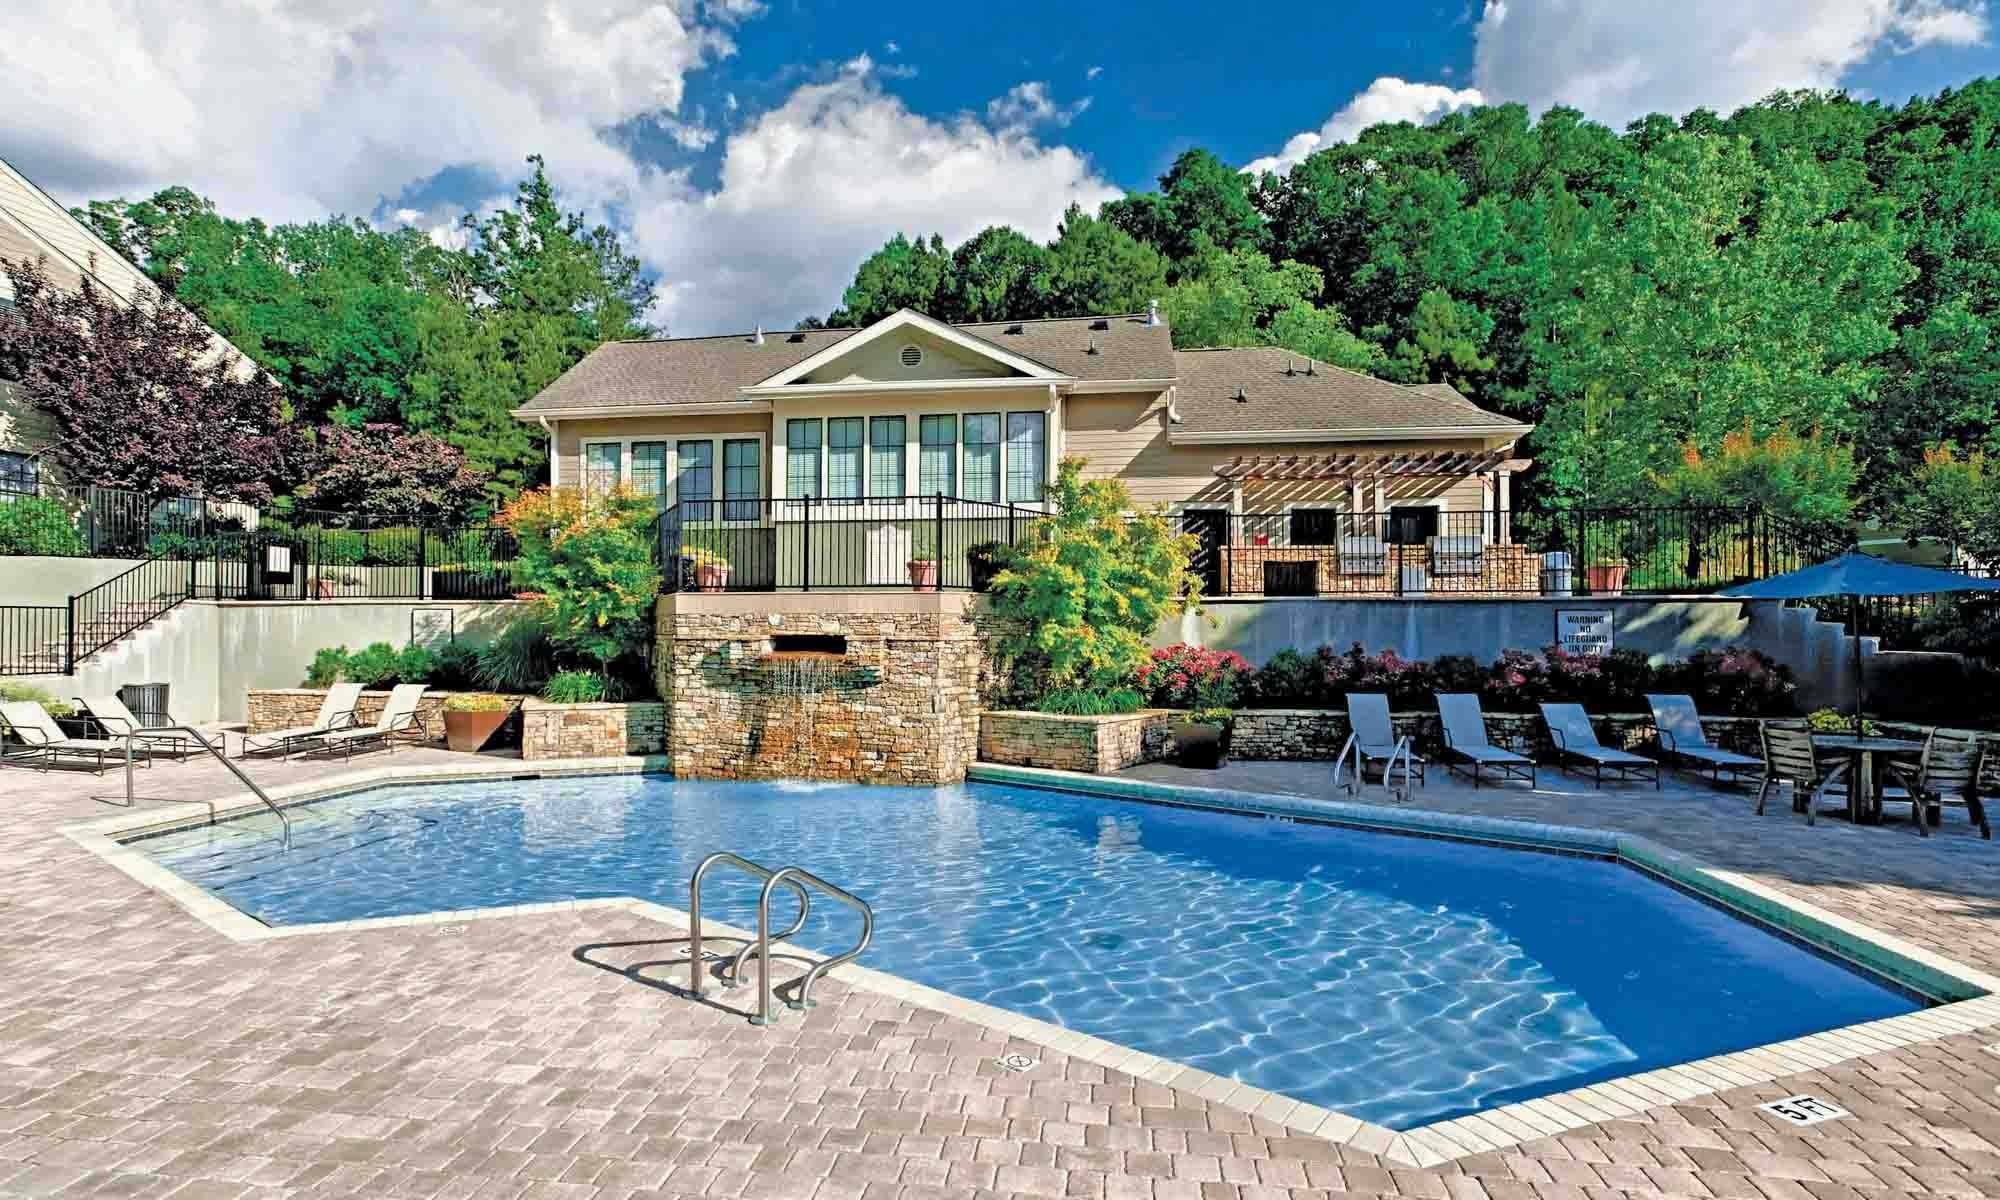 Atlanta apartments for singles Buckhead Atlanta, GA Apartments and Penthouses, The Residence Buckhead Atlanta